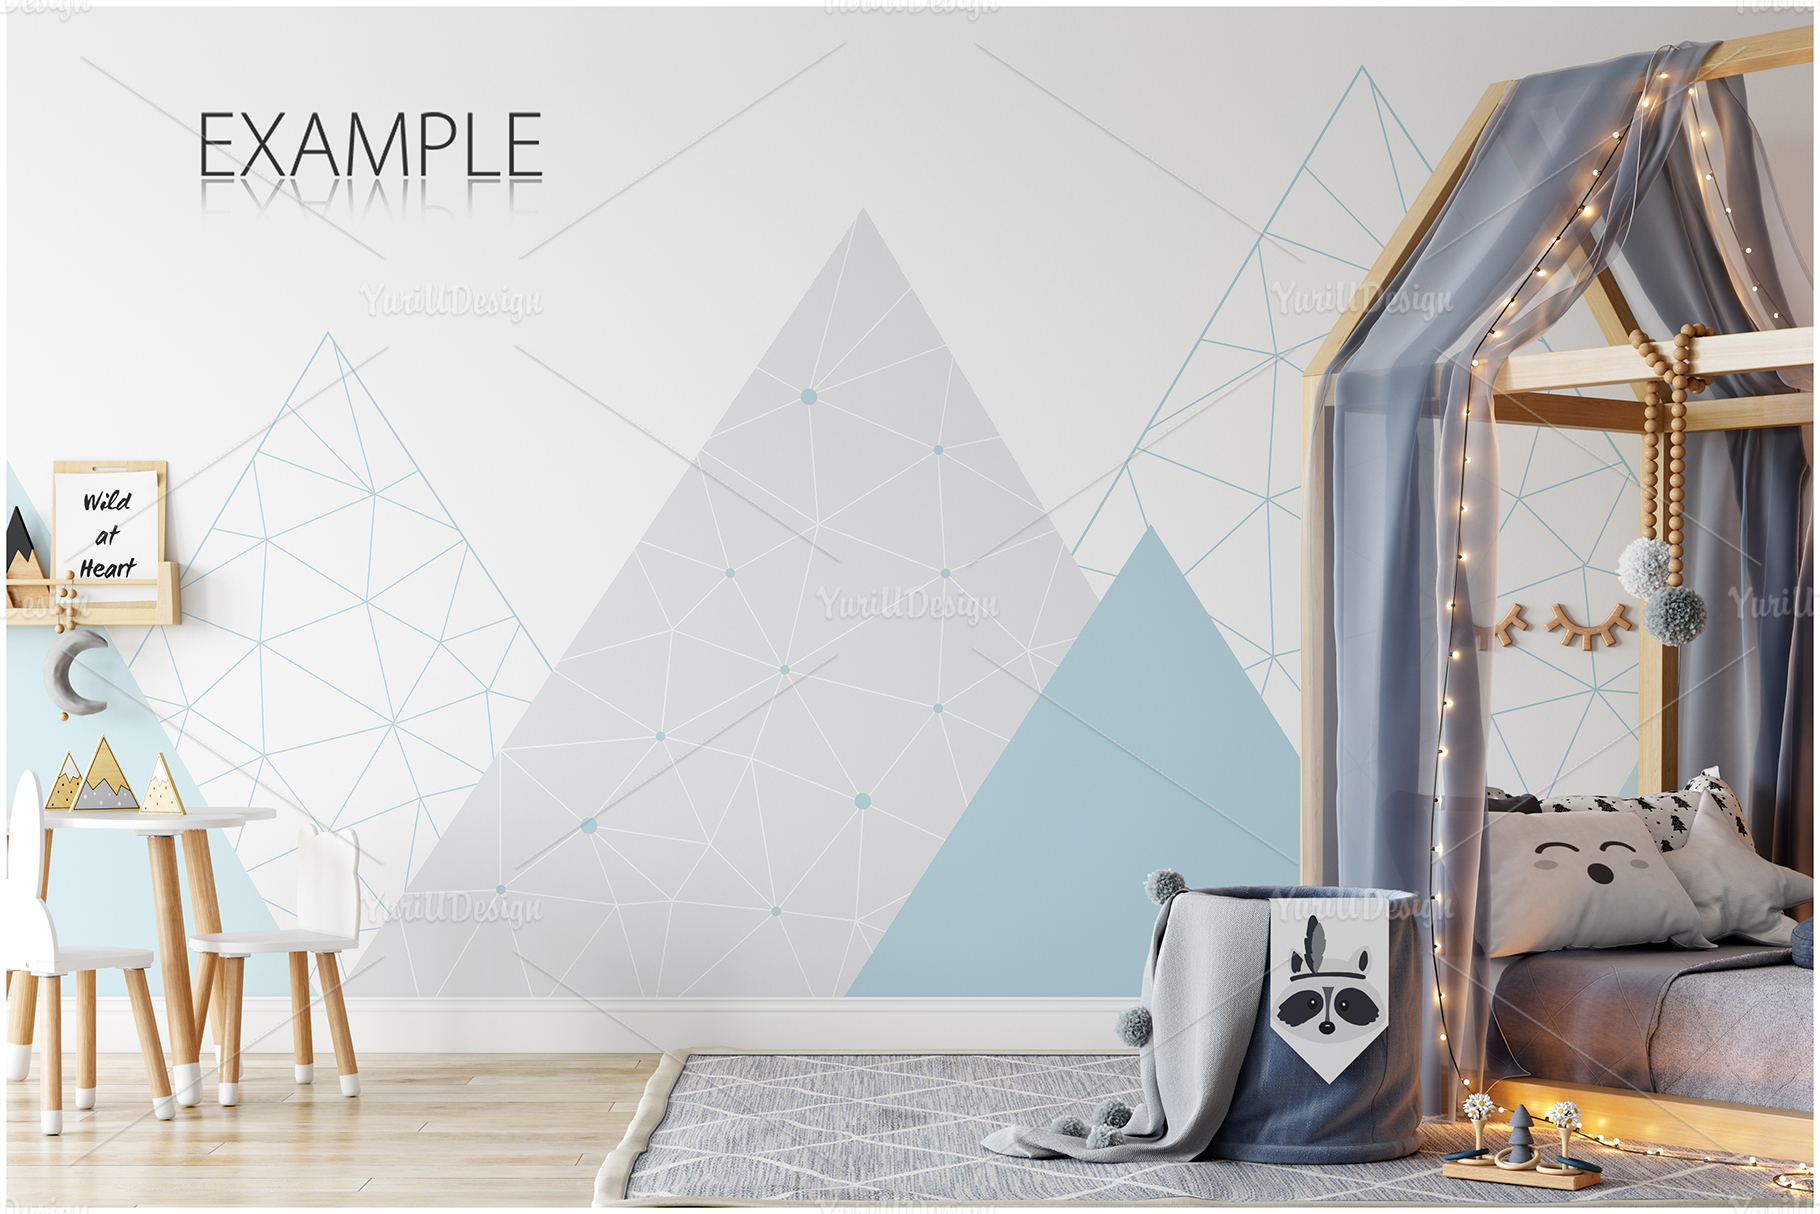 Kids Frames & Wall Mockup Bundle - 5 example image 13